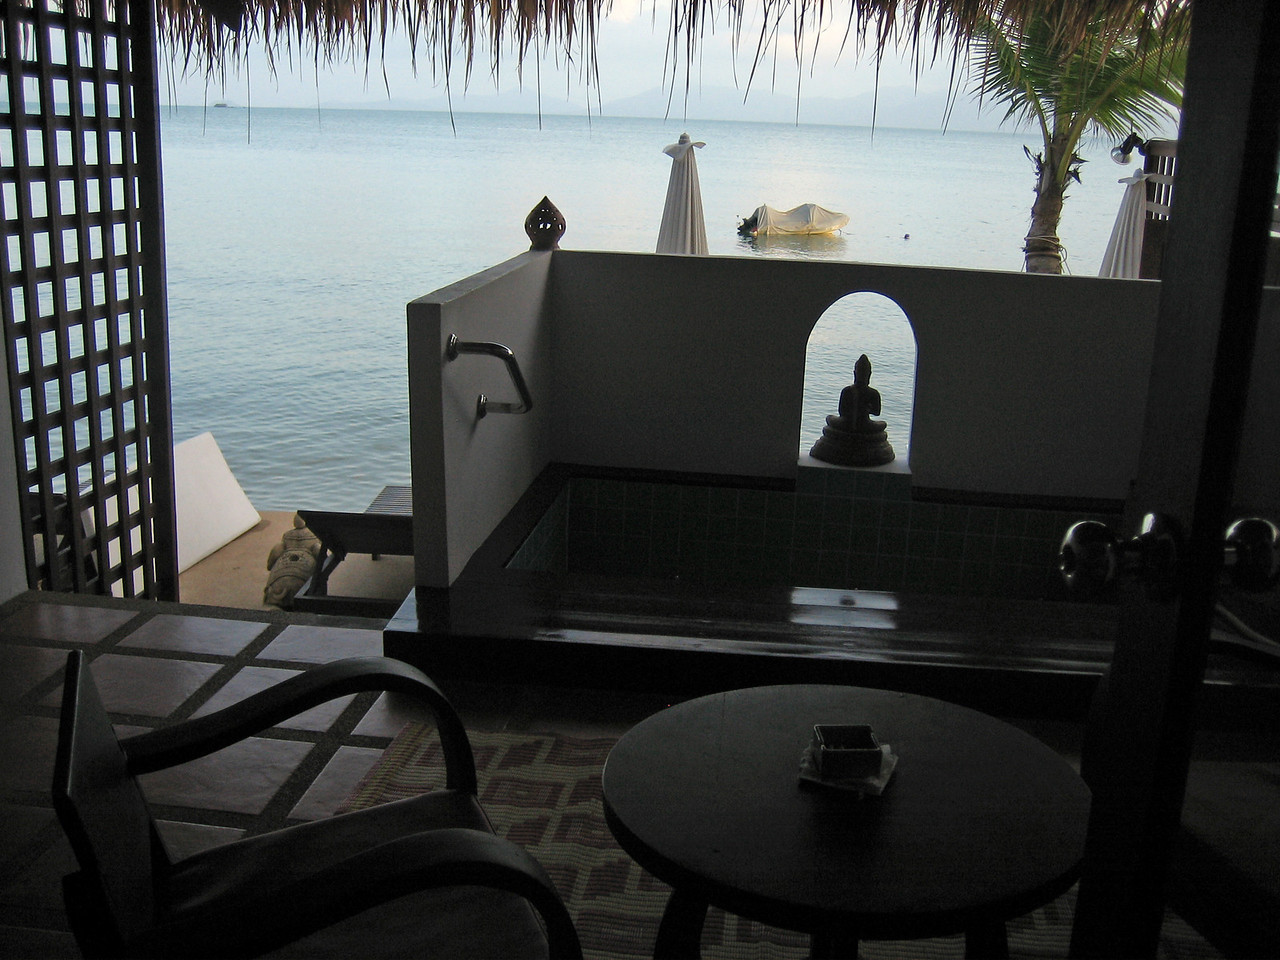 Our lovely patio by the Gulf of Thailand